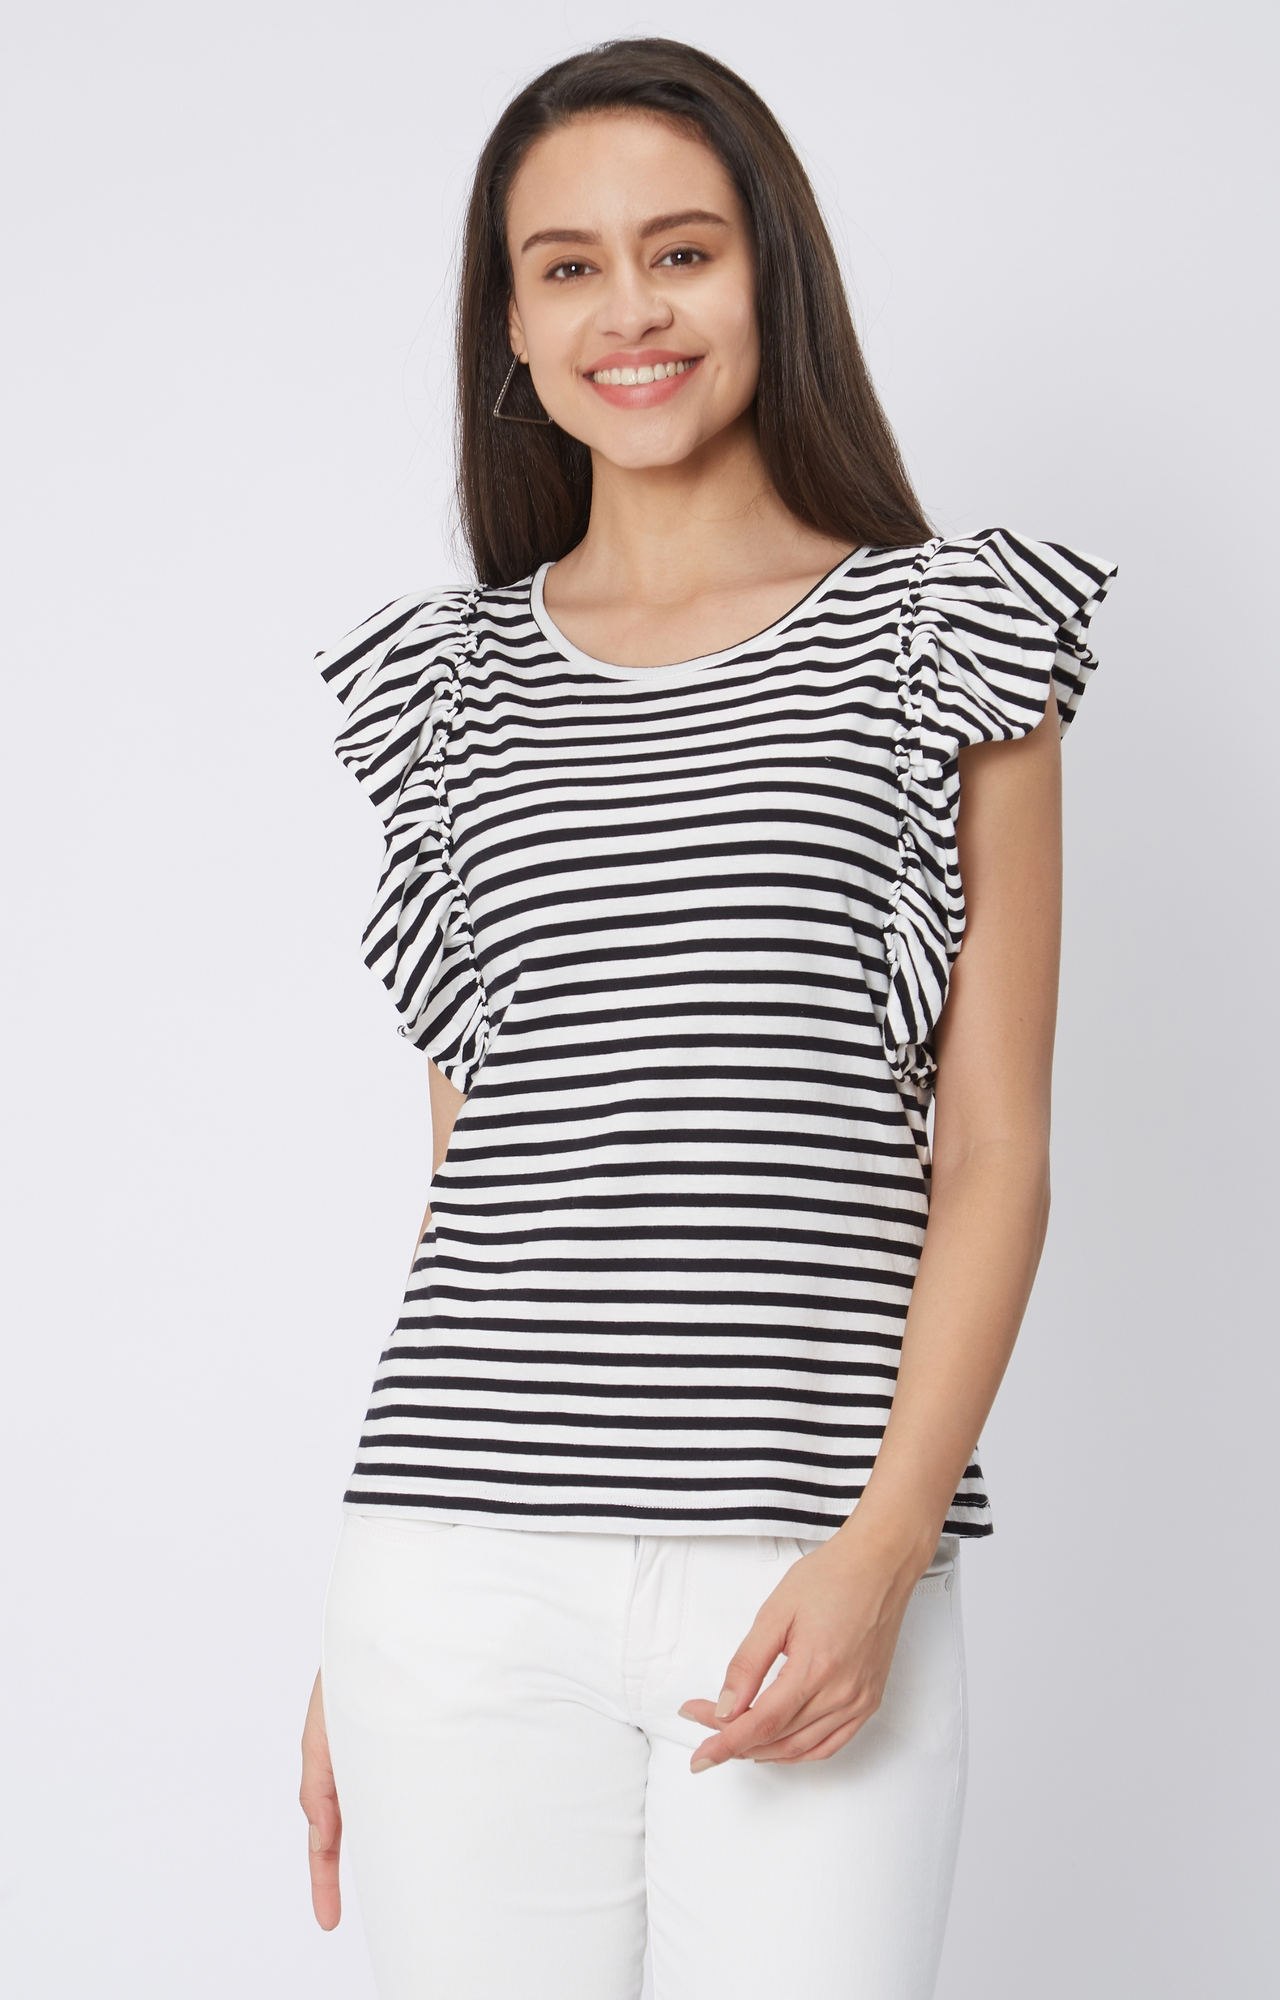 Pepe Jeans   White and Black Striped T-Shirt